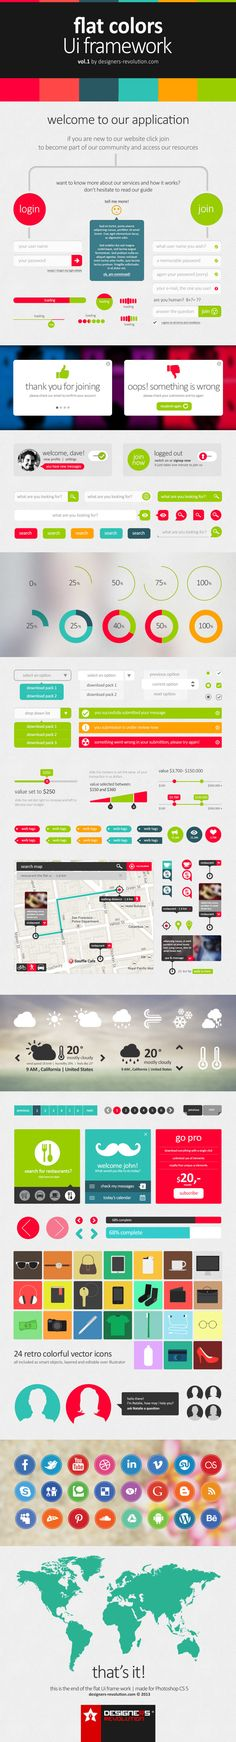 Flat Colors UI Framework PSD by Designers Revolution, via Behance